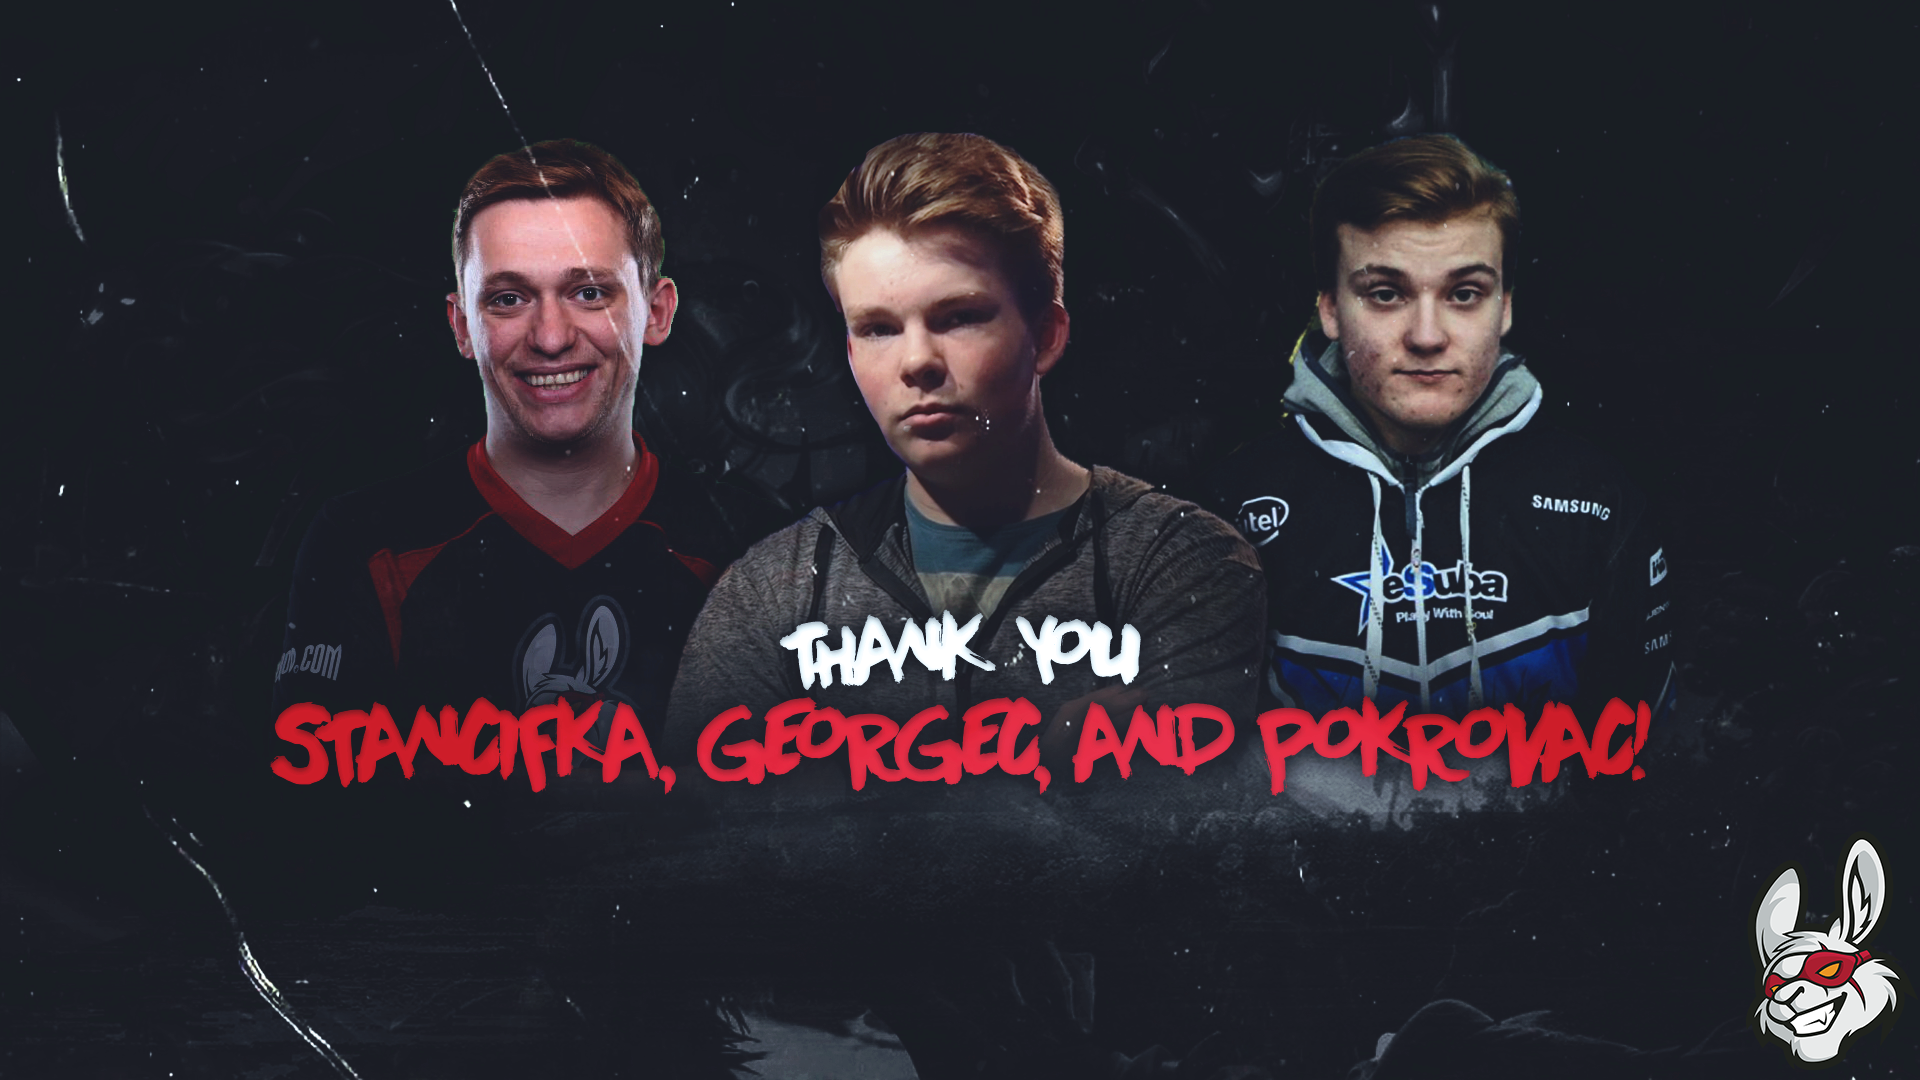 Thank you StanCifka, GeorgeC, & Pokrovac!